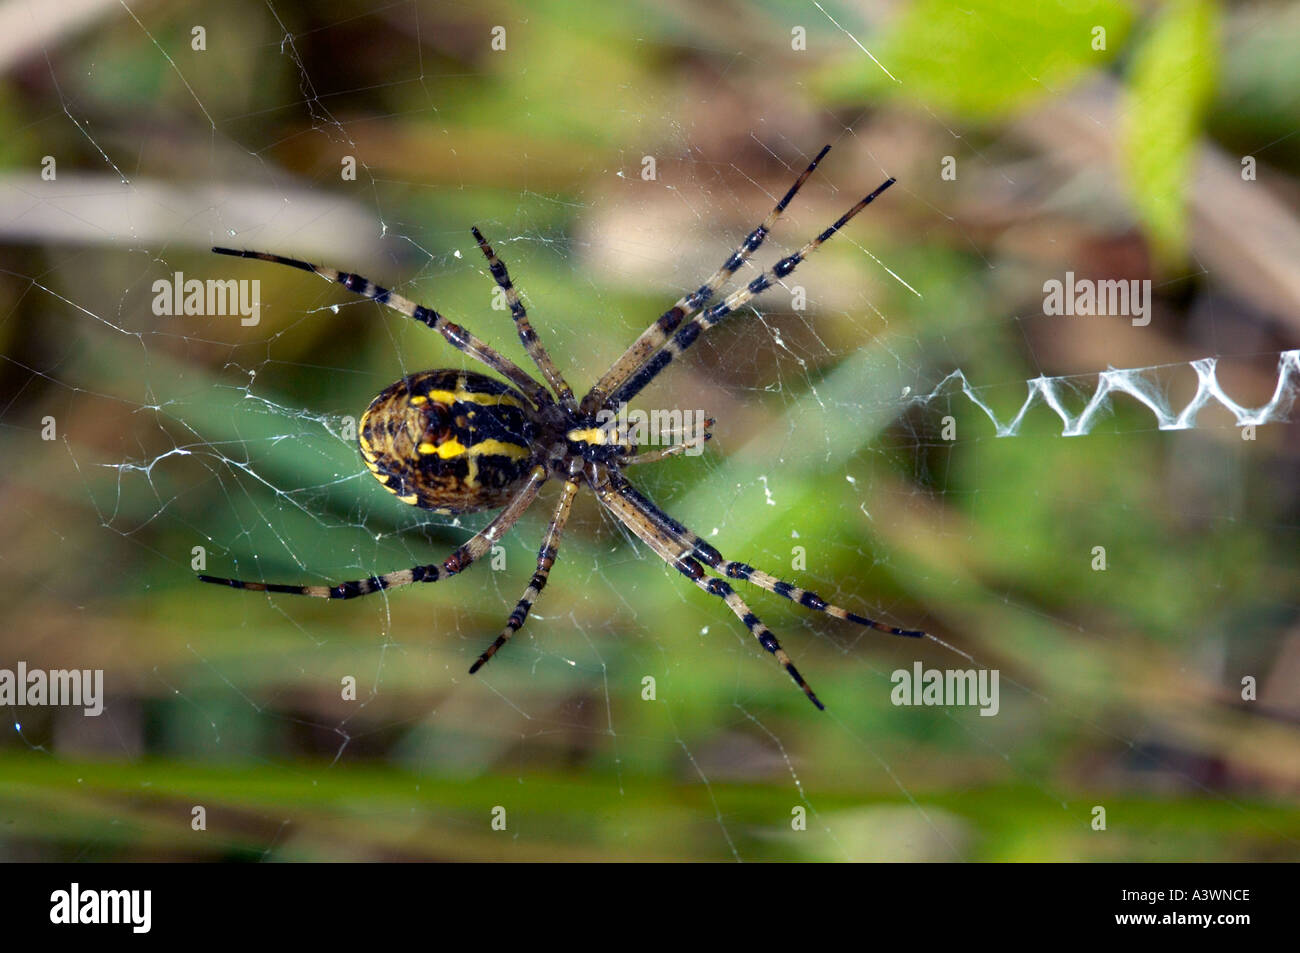 Spider Argiope Brunnicha: photo, characteristic